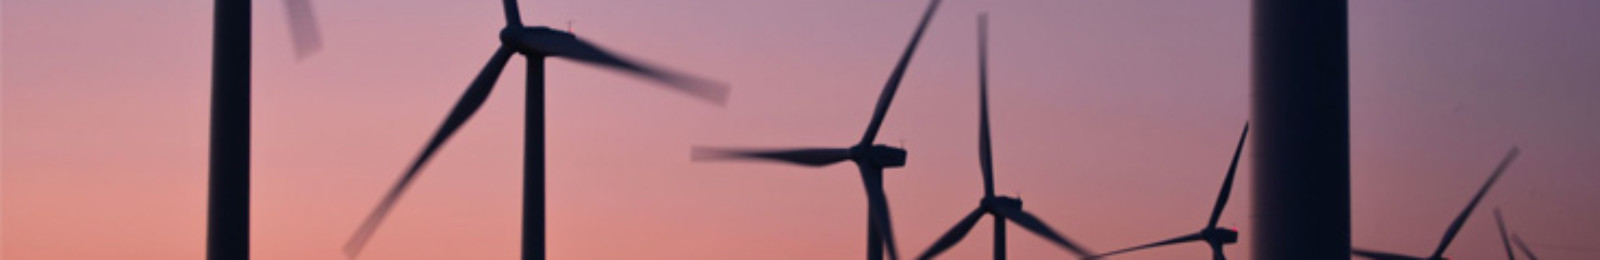 Renewable Energy Project Developmentpage banner image